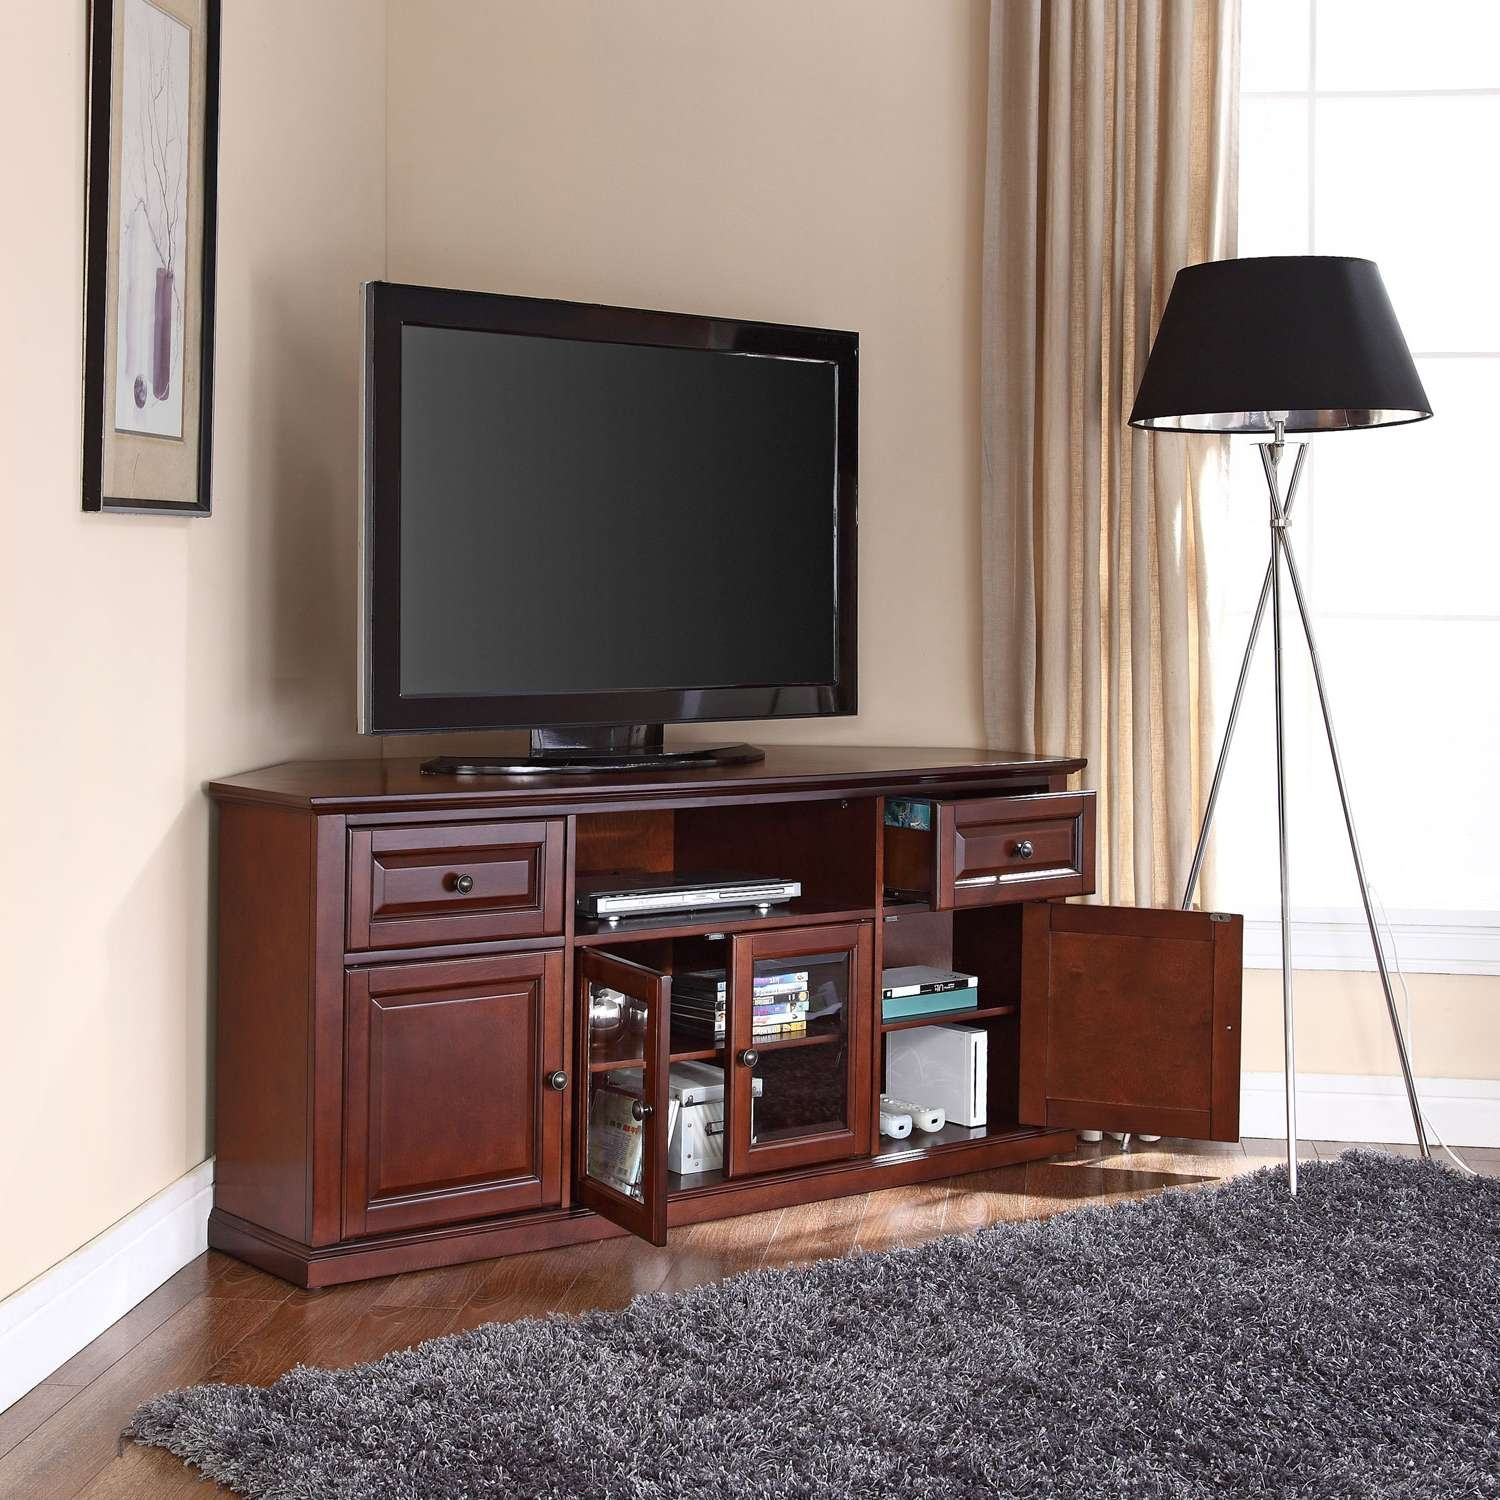 60 Inch Corner Tv Stand In Vintage Mahogany Crosley Furniture Intended For Mahogany Tv Stands Furniture (View 1 of 15)